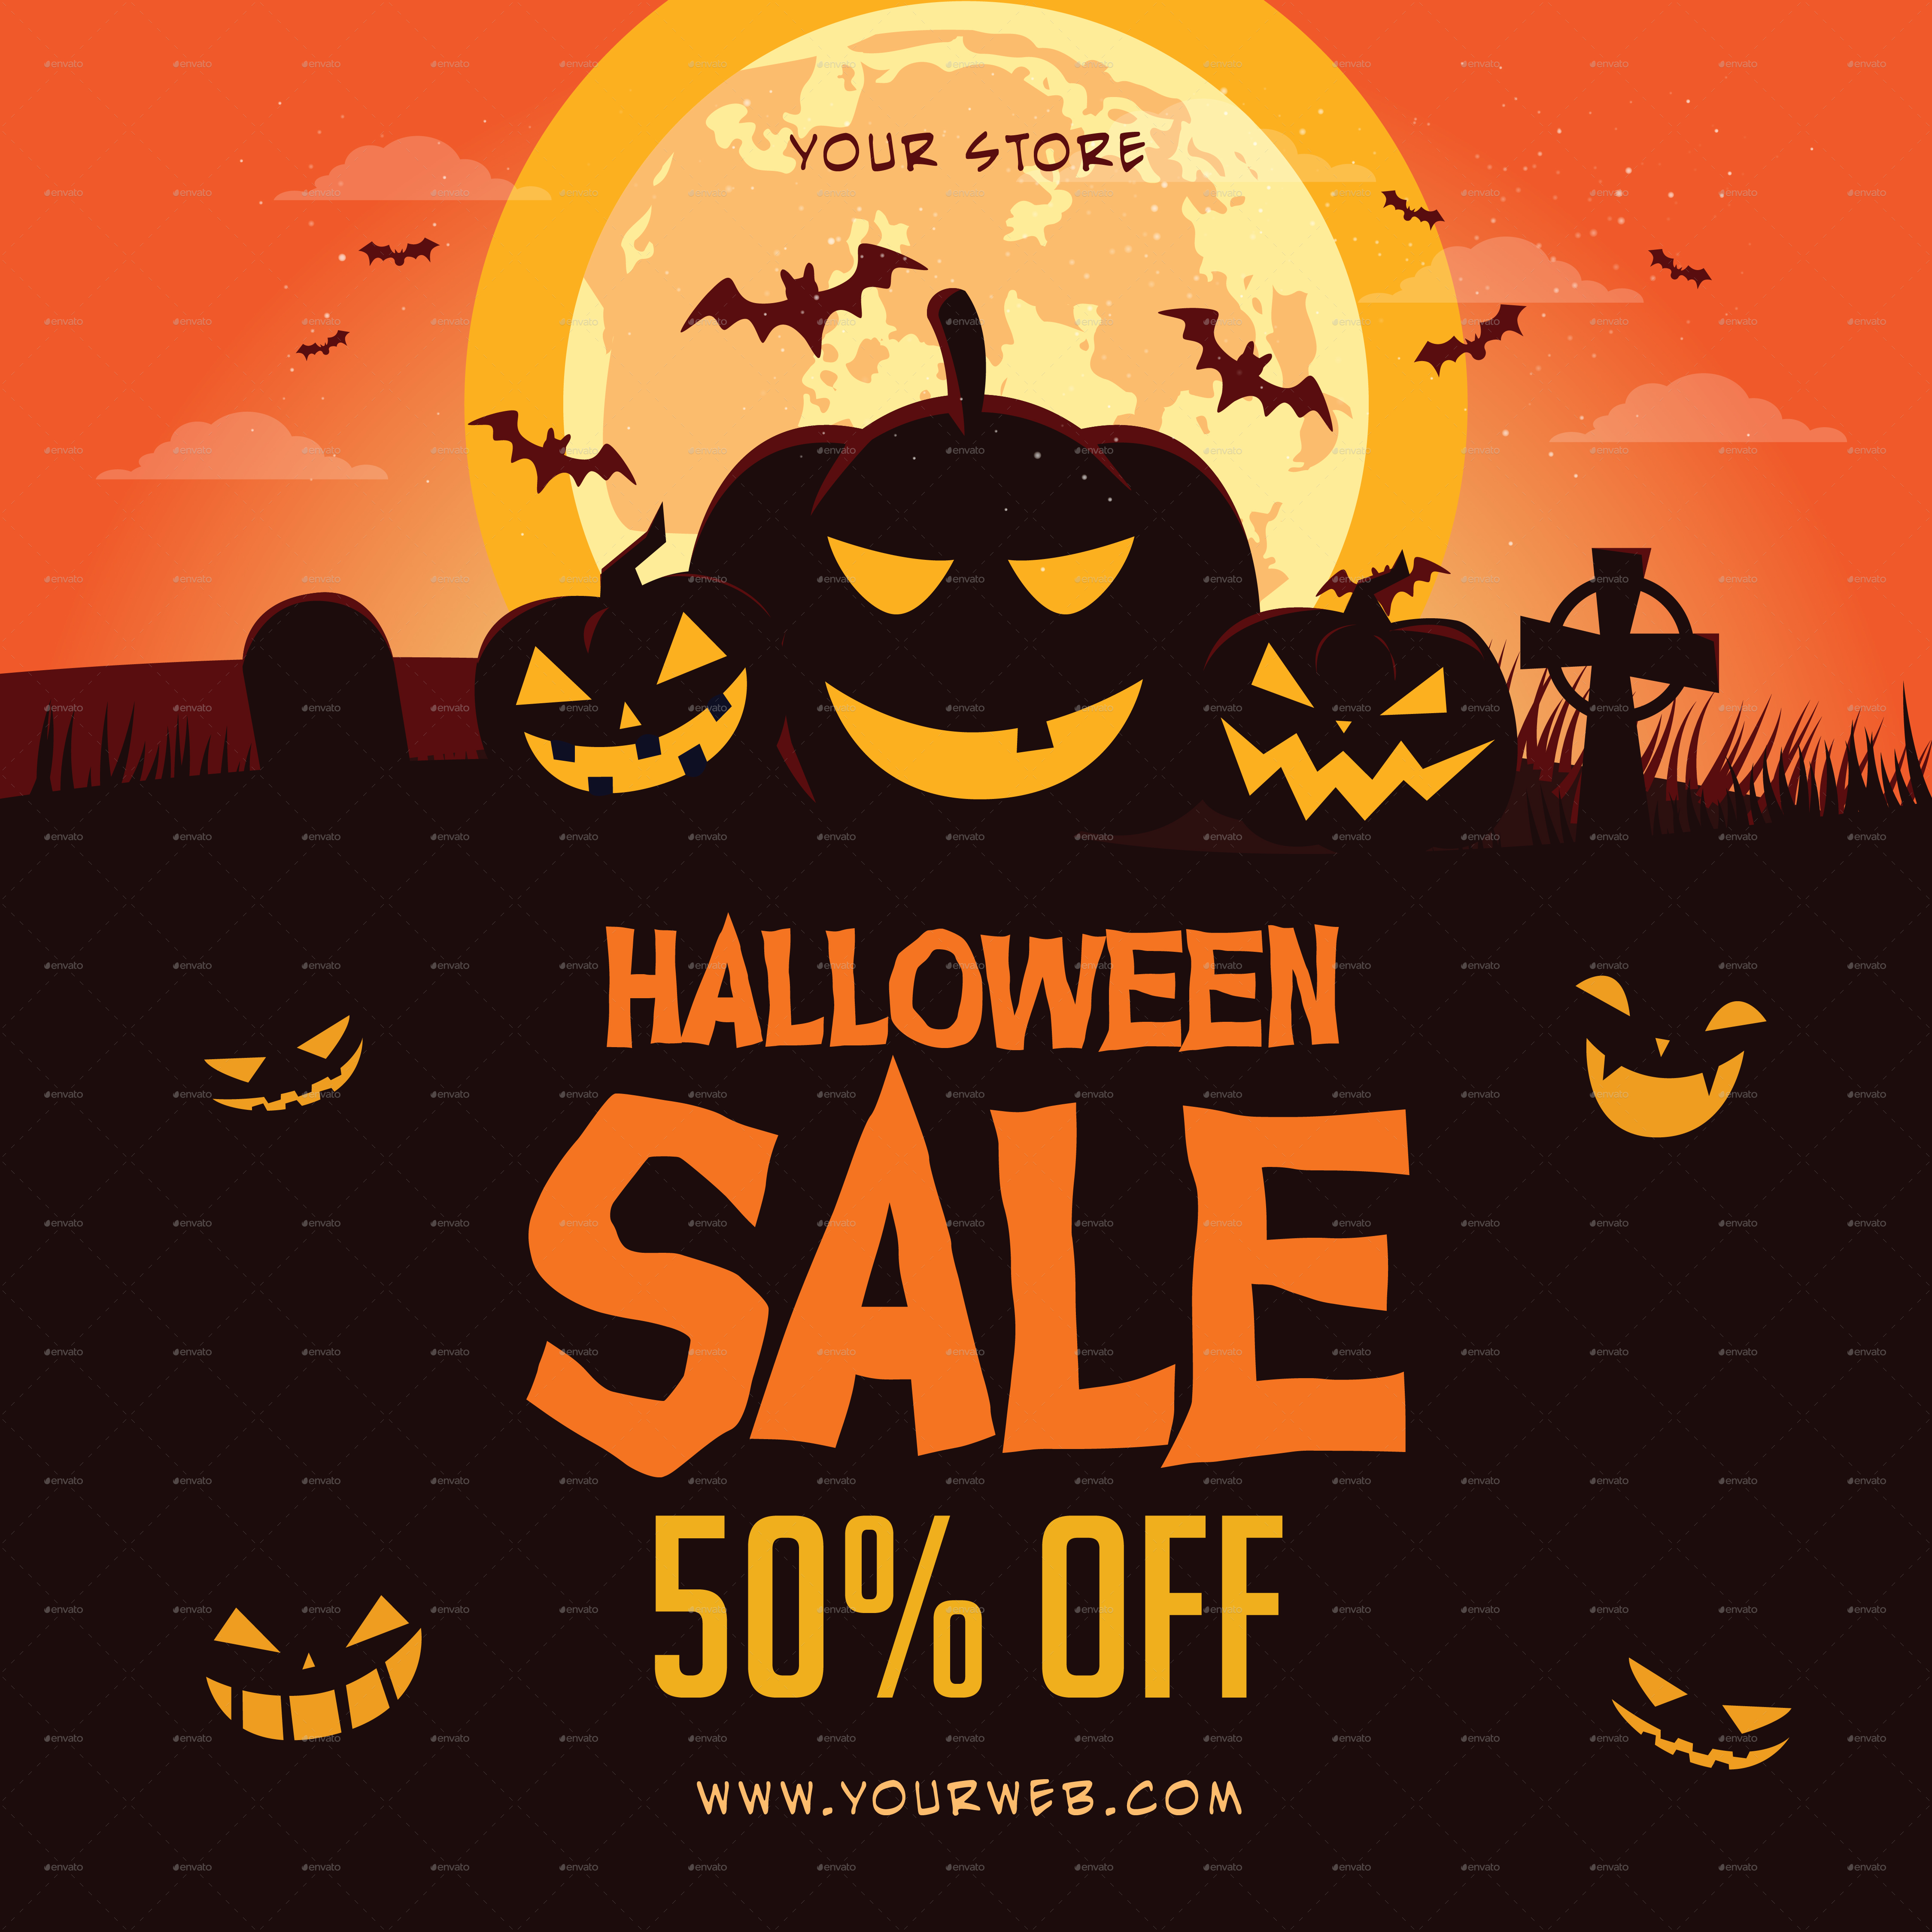 Halloween Sale Flyer by infinite78910 | GraphicRiver